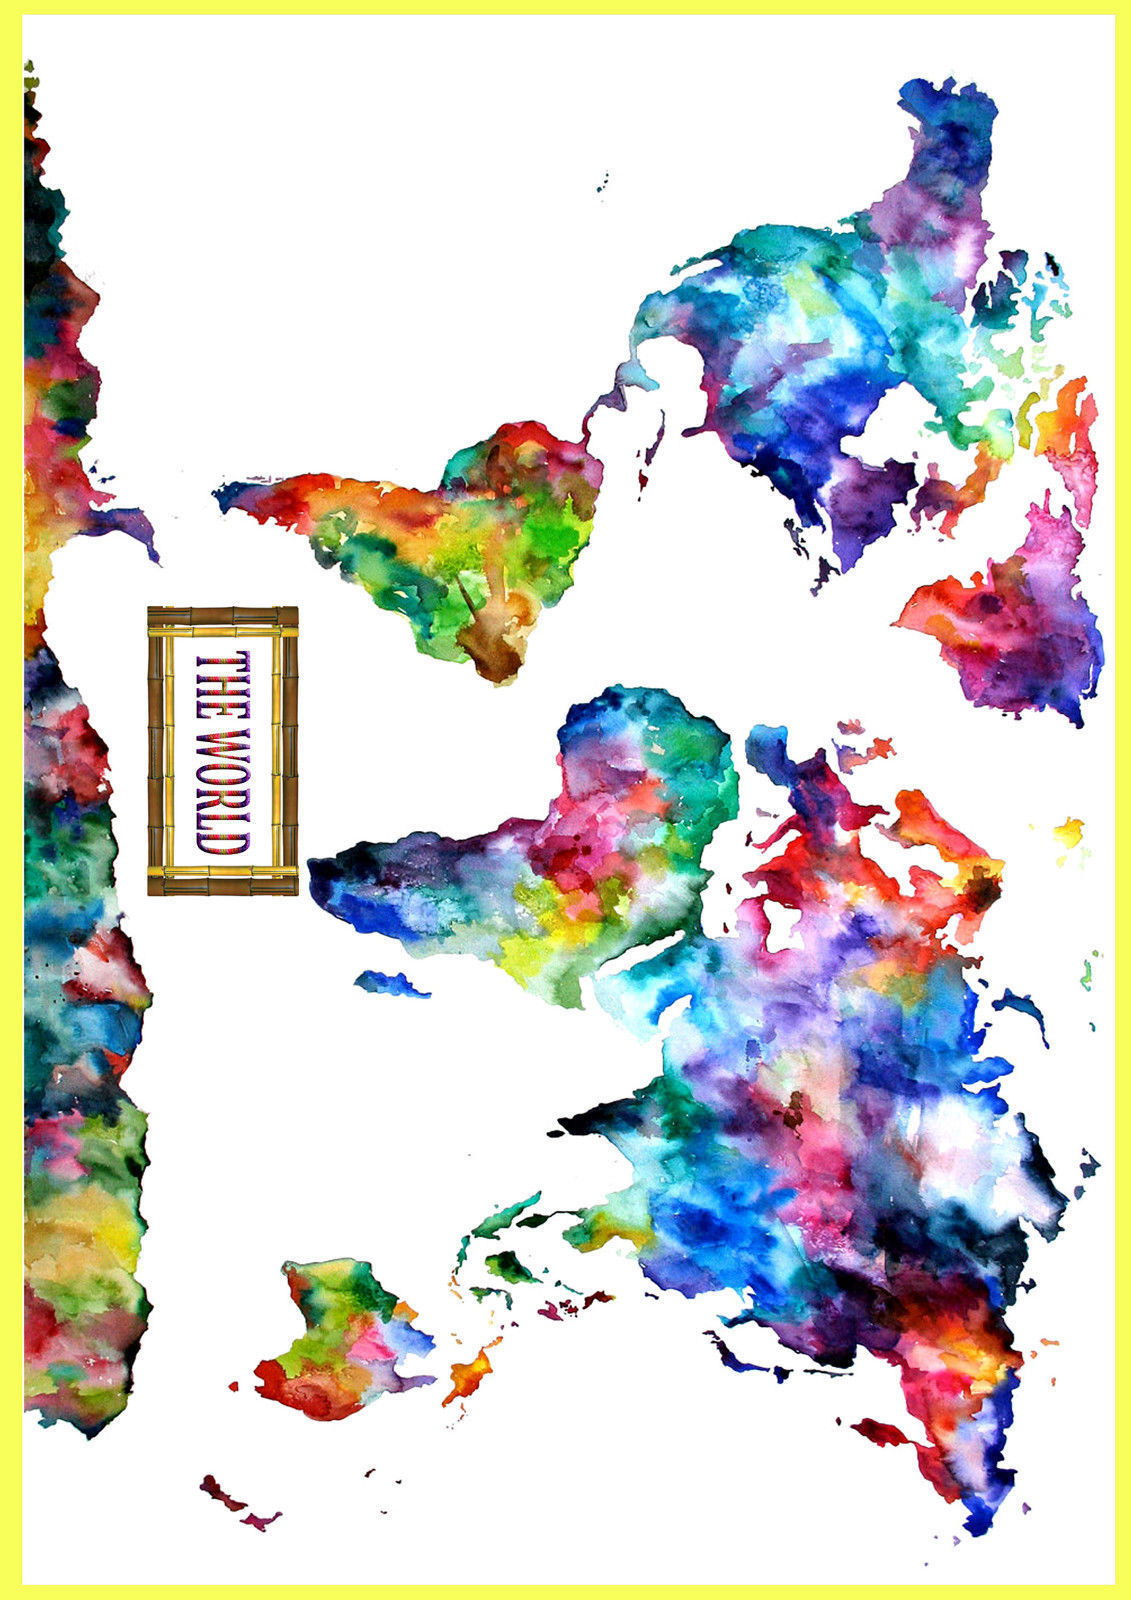 62321 watercolor world map wall print poster au ebay 62321 watercolor world map wall print poster au gumiabroncs Image collections